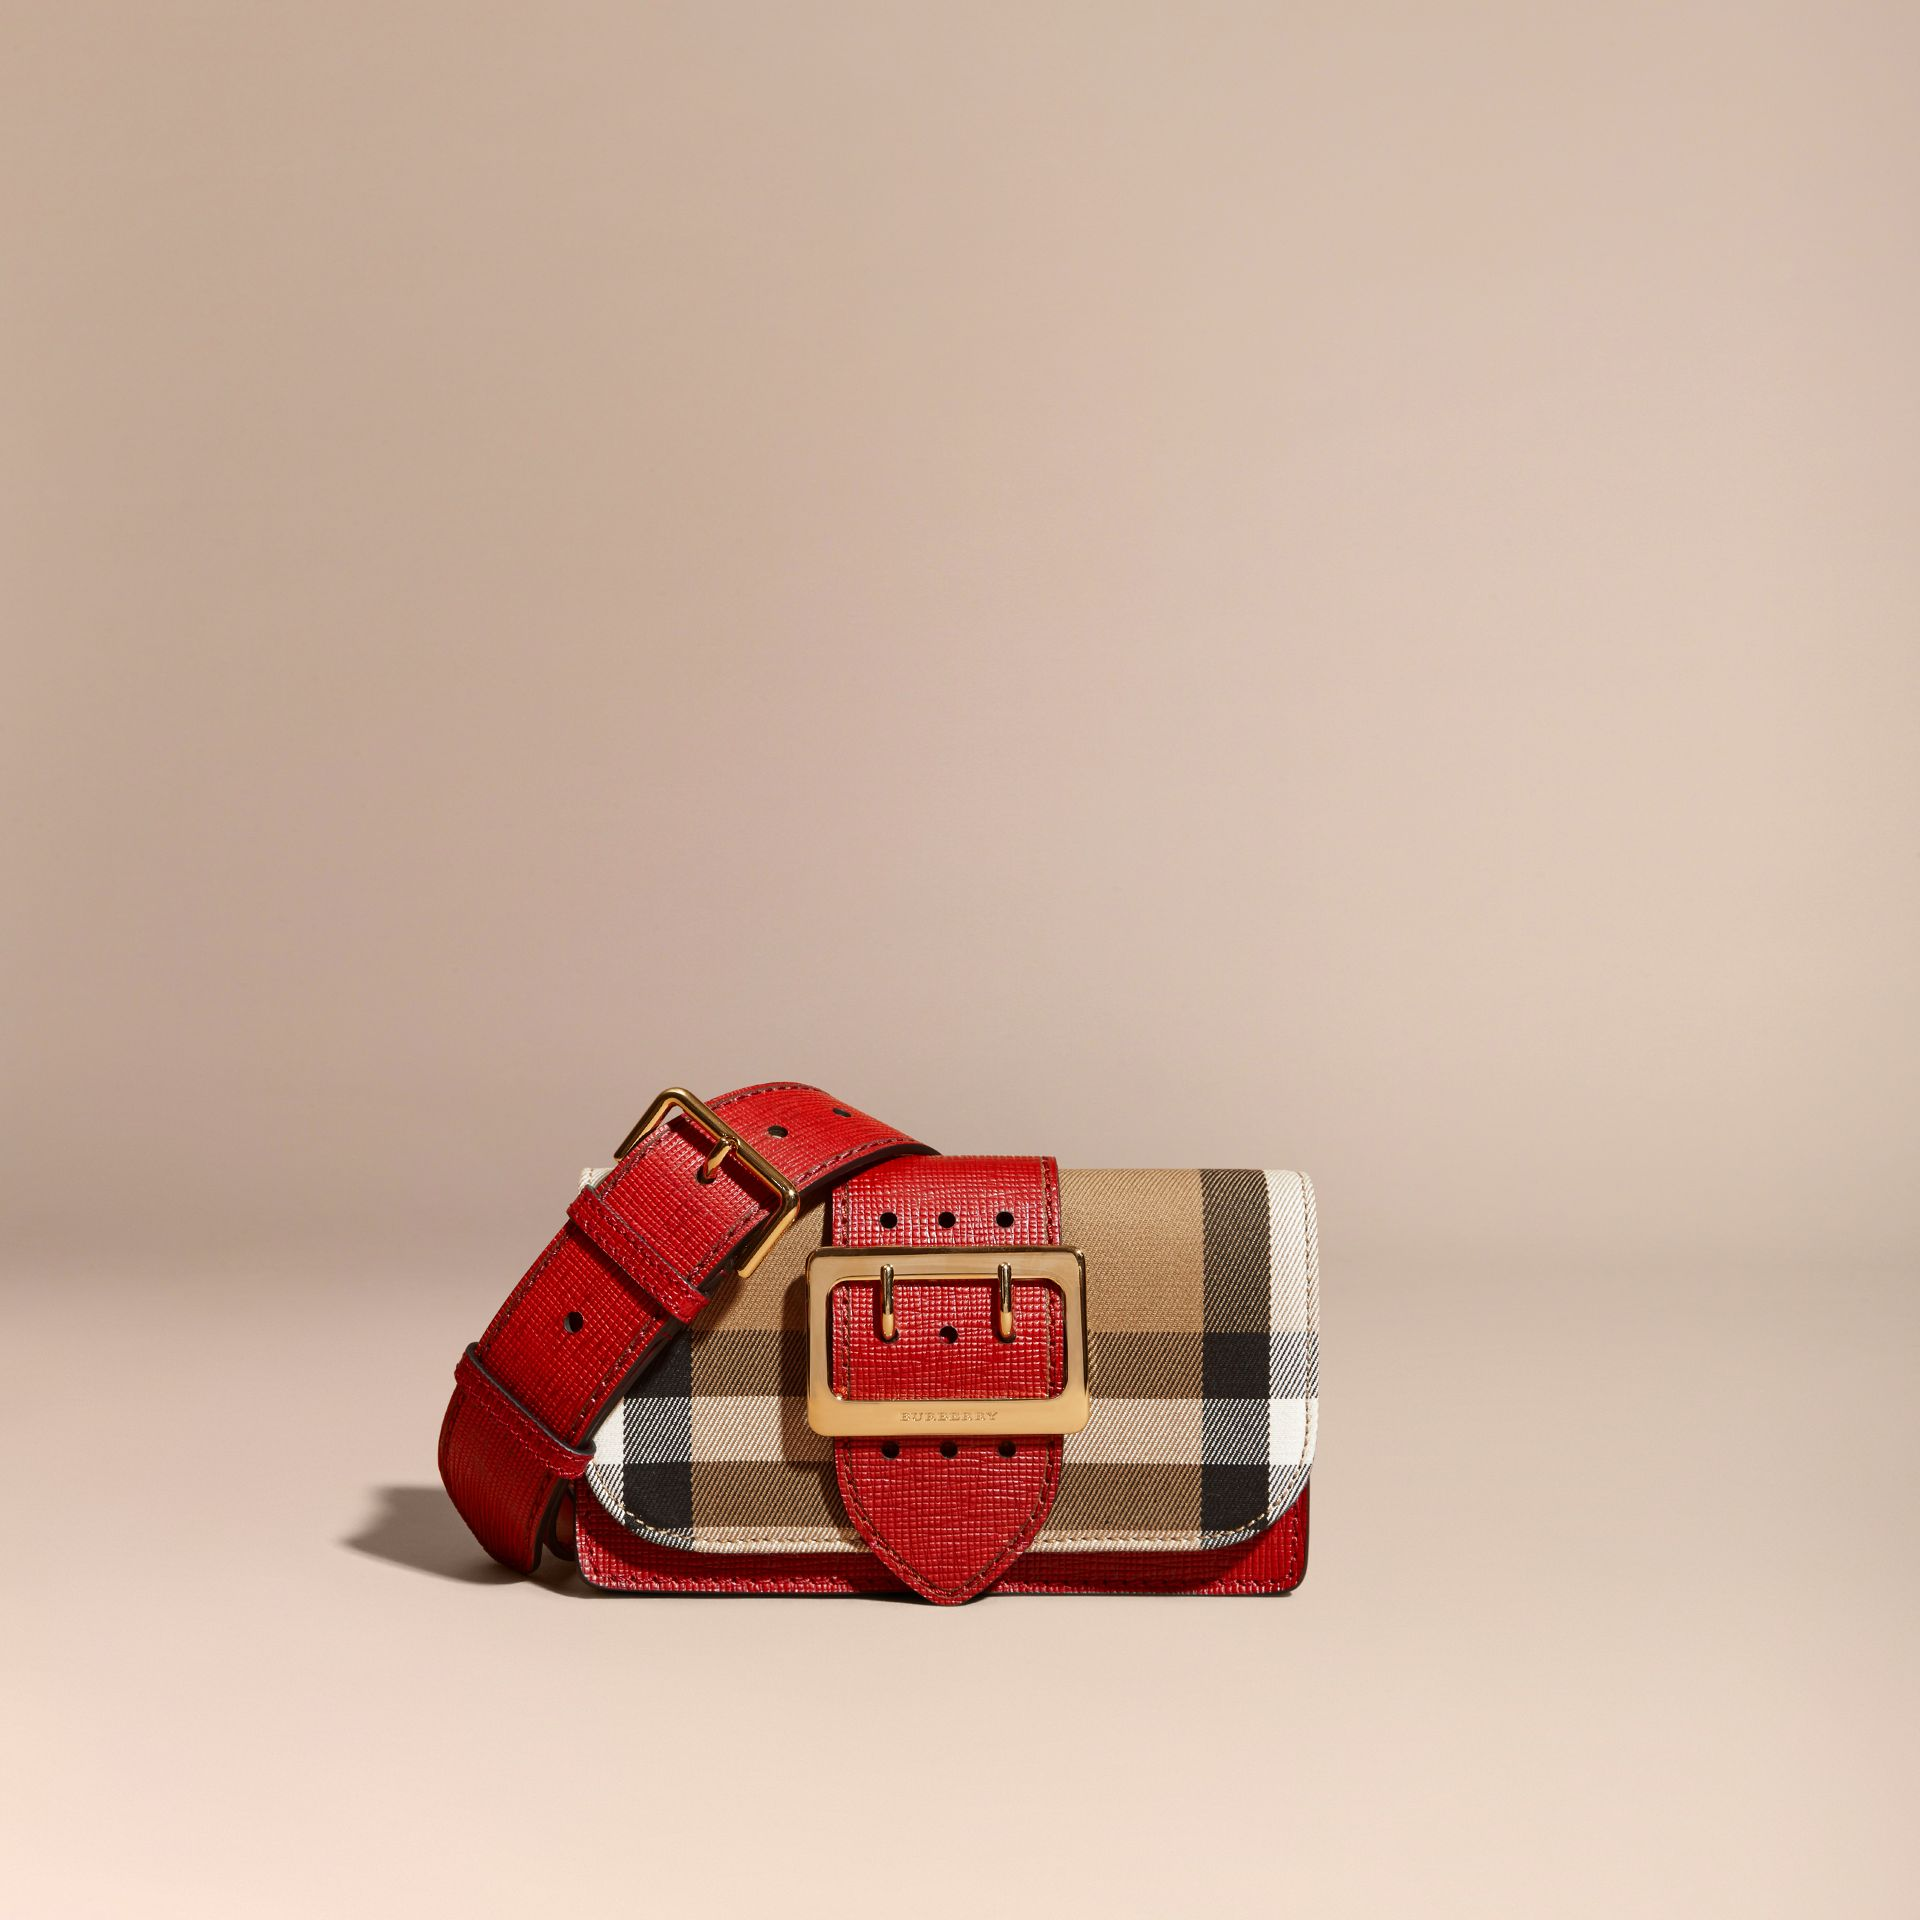 The Small Buckle Bag in House Check and Leather in Military Red/military Red - gallery image 9